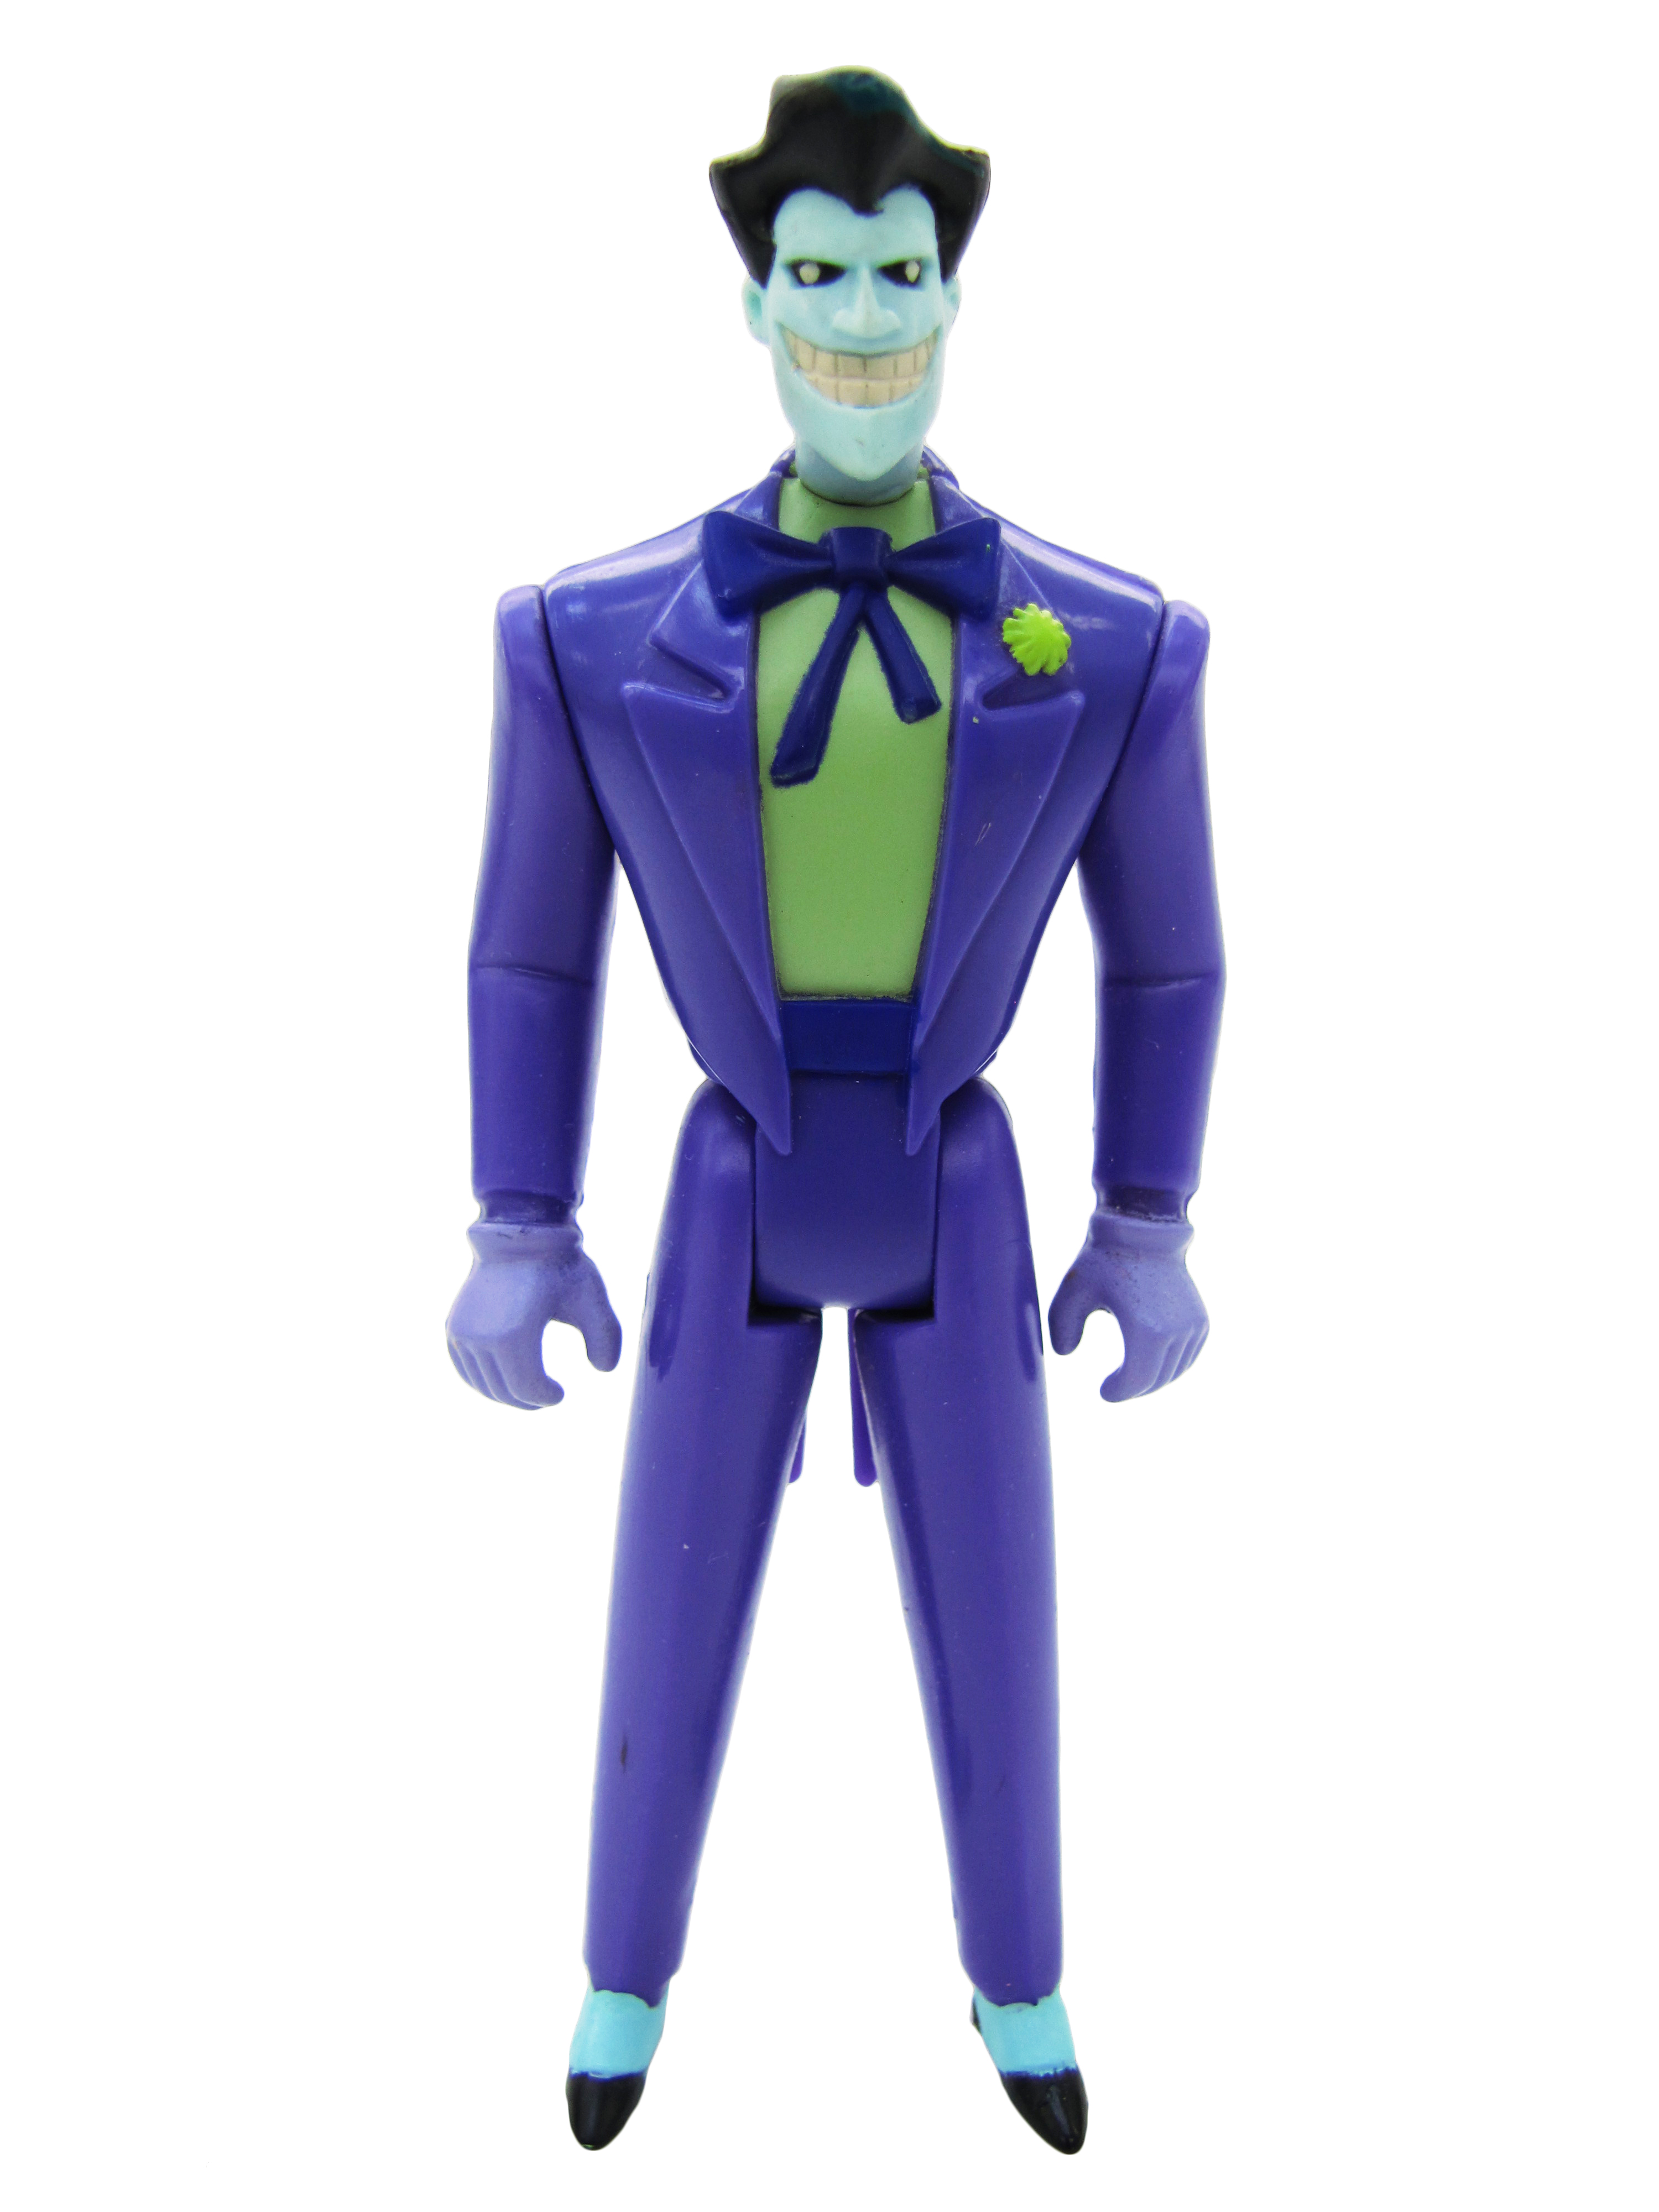 1998 The New Batman Adventures WILDCARD JOKER Mint